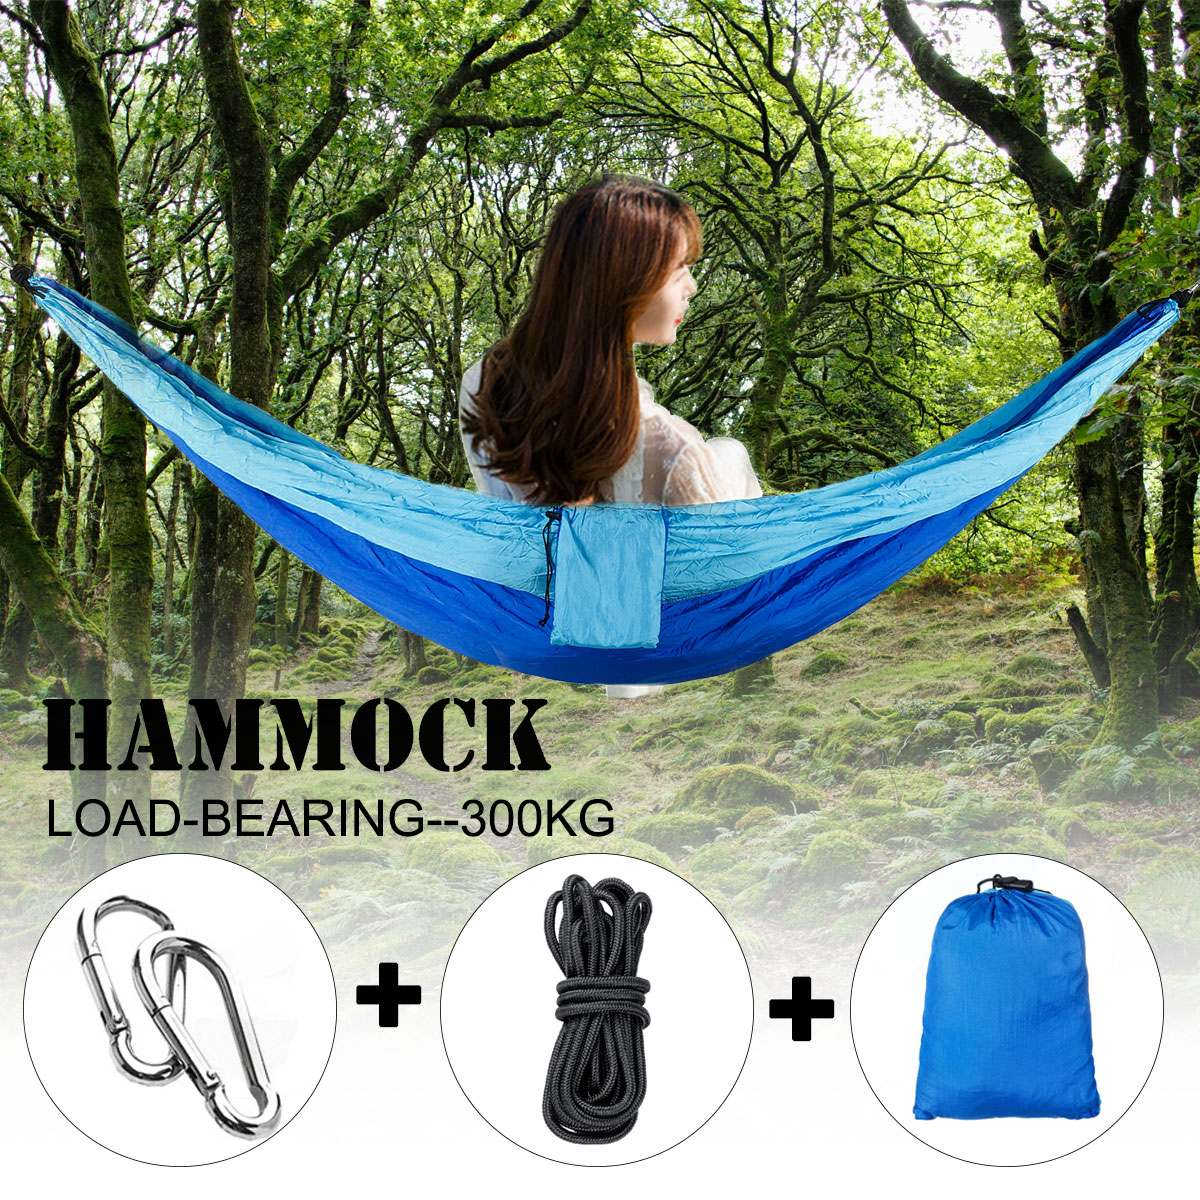 2 Person Outdoor Camping Parachute Hammock Portable Safety Hanging Sleeping Bed For Adult Backpacking Travel With Hook Rope